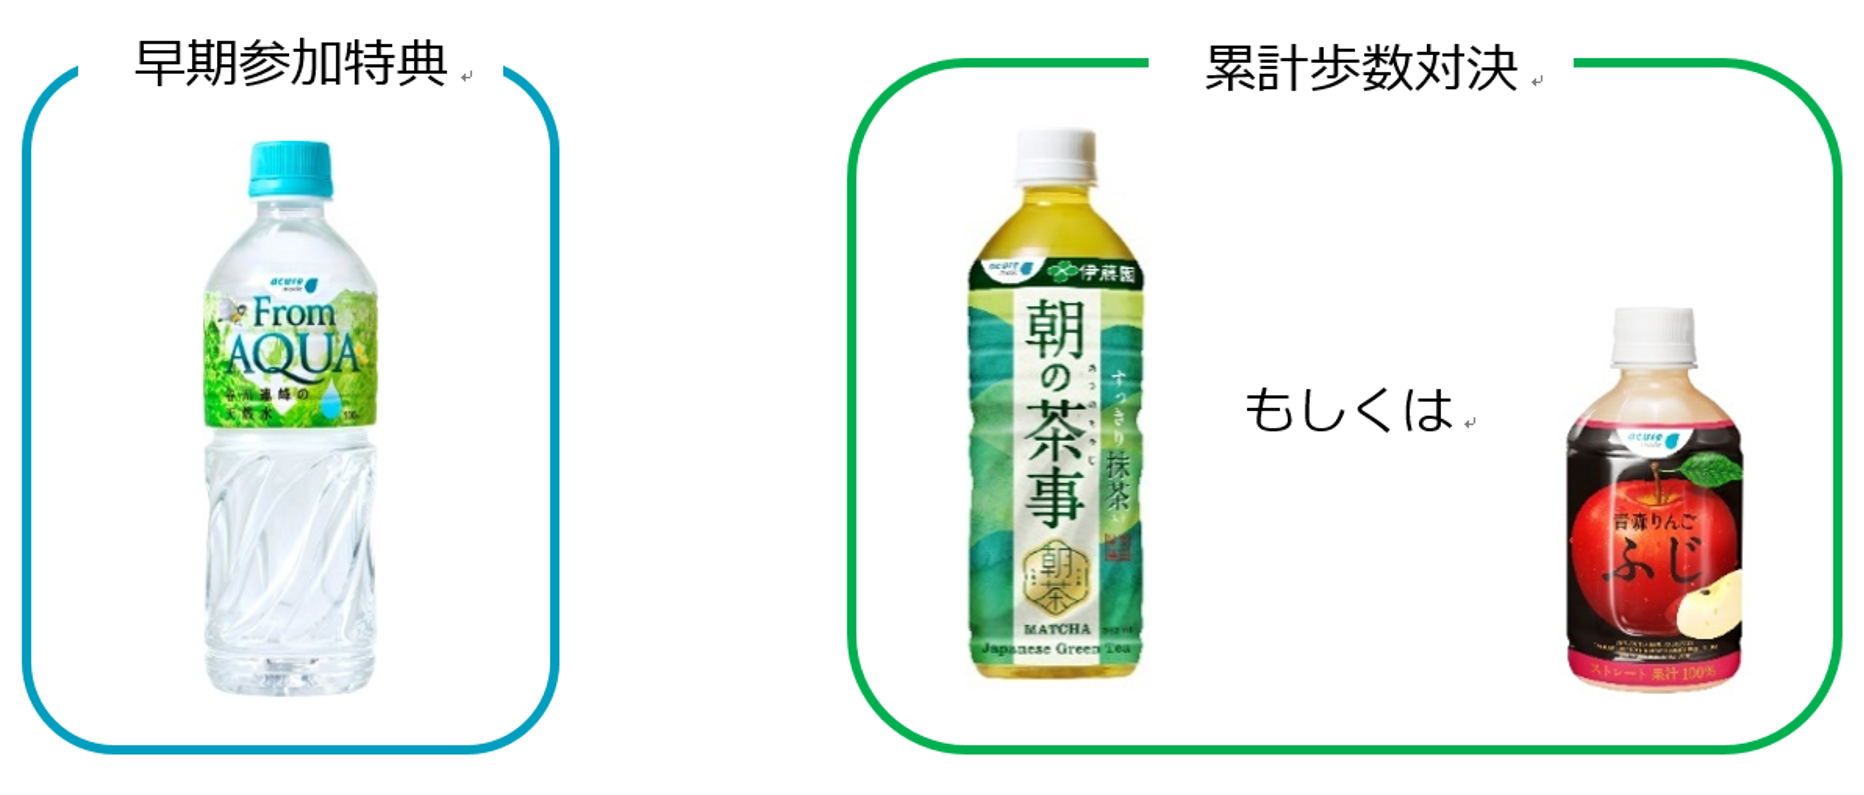 http://corporate.navitime.co.jp/topics/637100106702d3d46755a978767ac12bc5bc150e.png